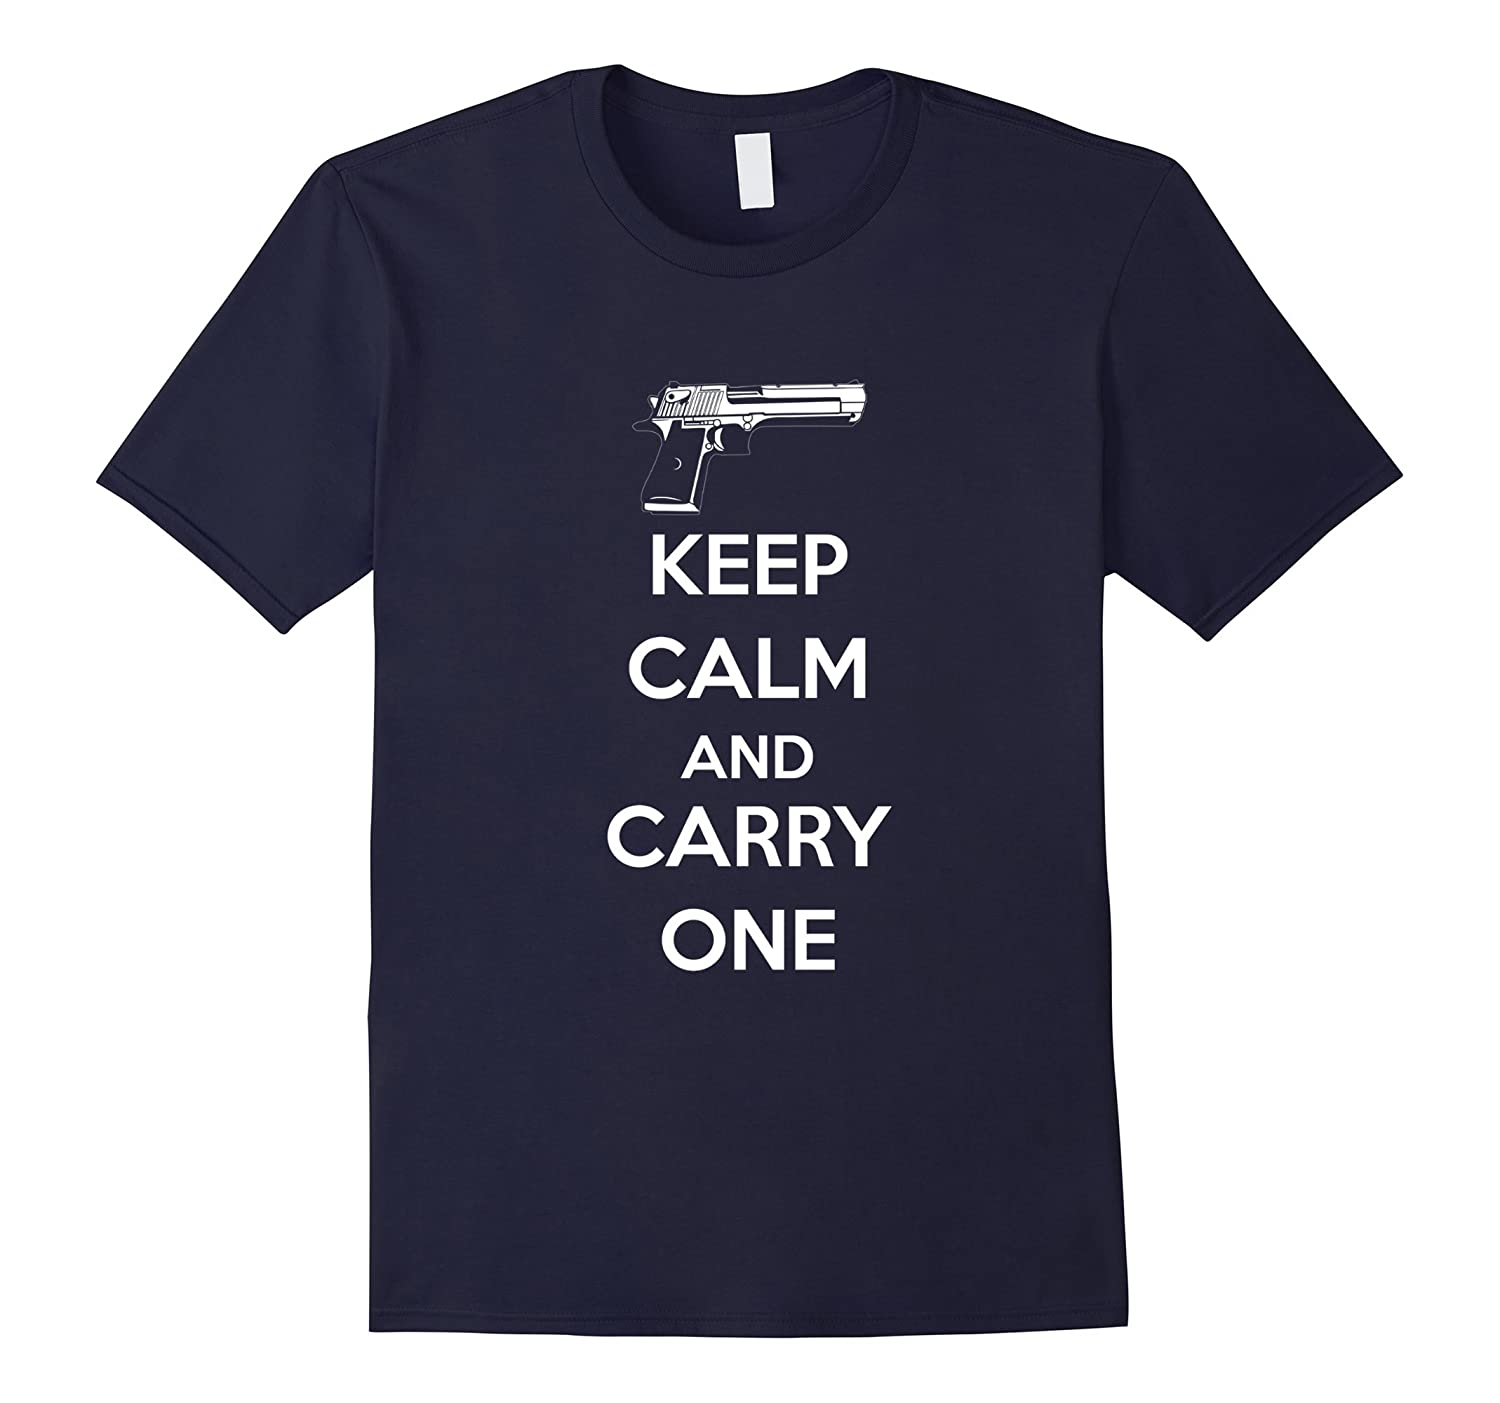 Funny 2nd Amendment T Shirt - Gun Rights Tee-Vaci